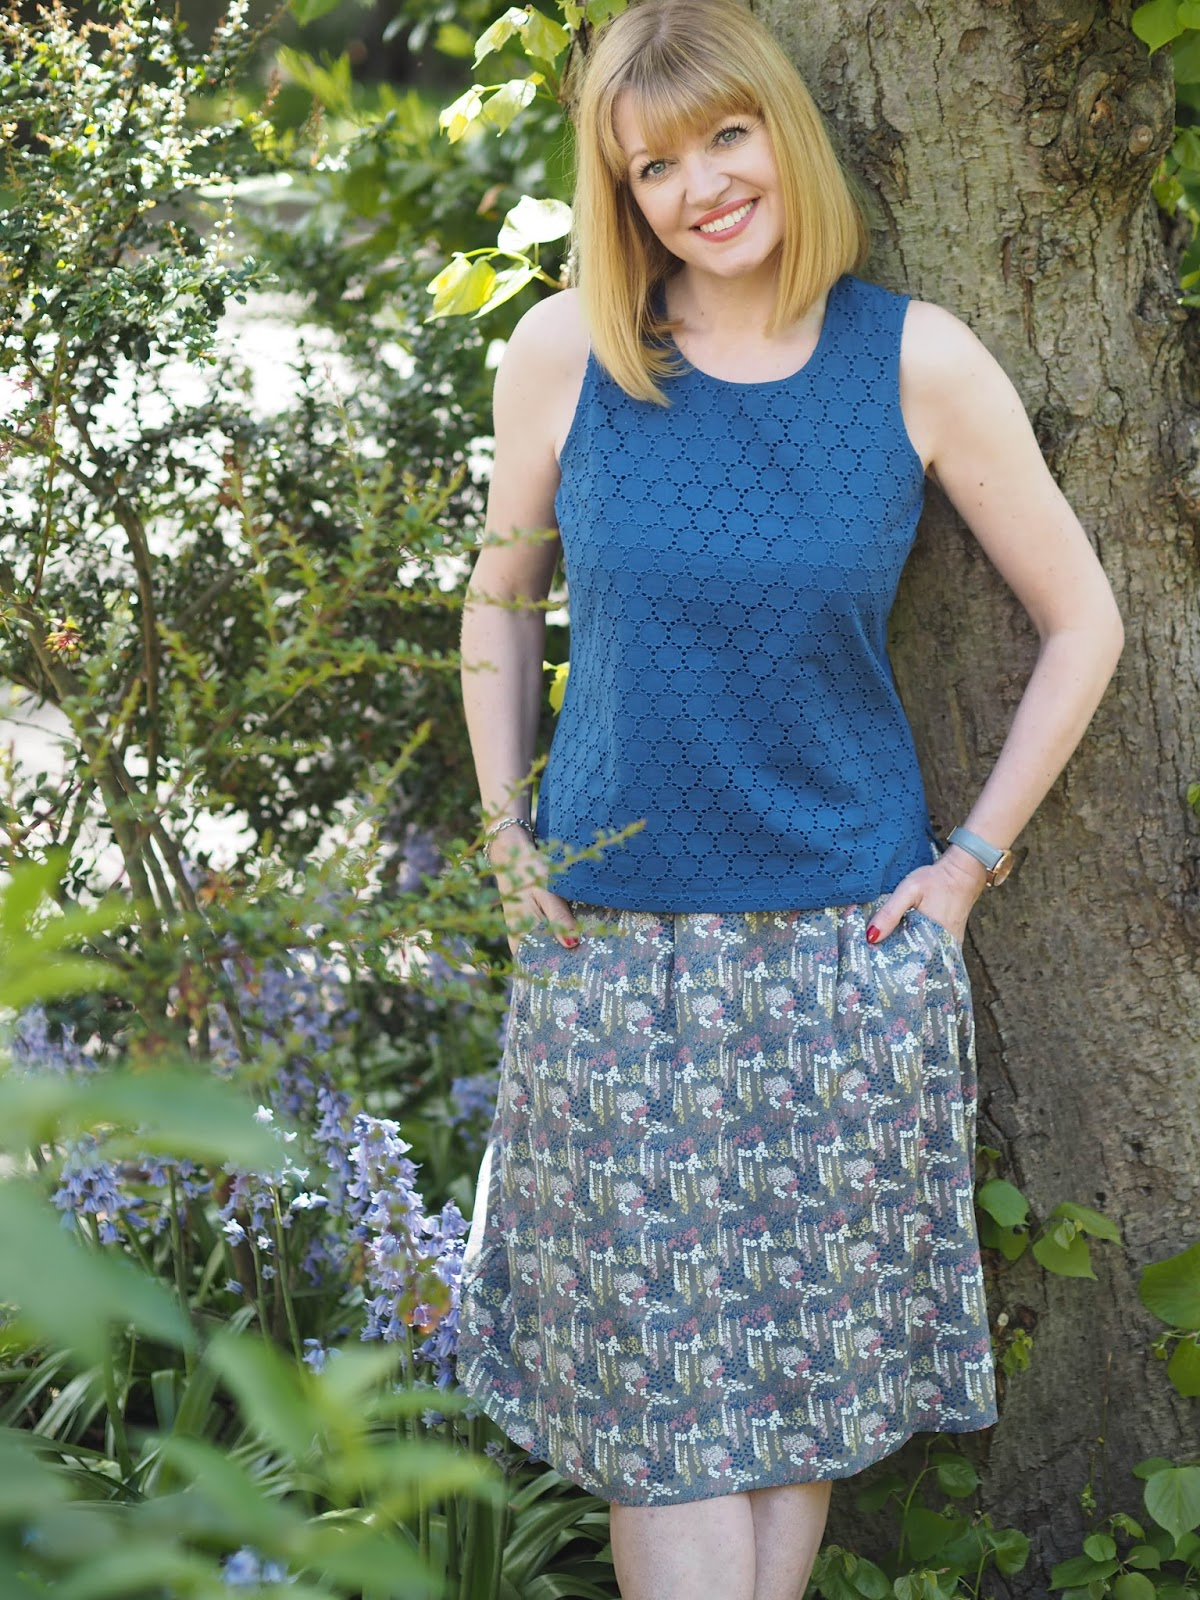 What-Lizzy-Loves- blue-broderie-shell-top-floral-skirt-